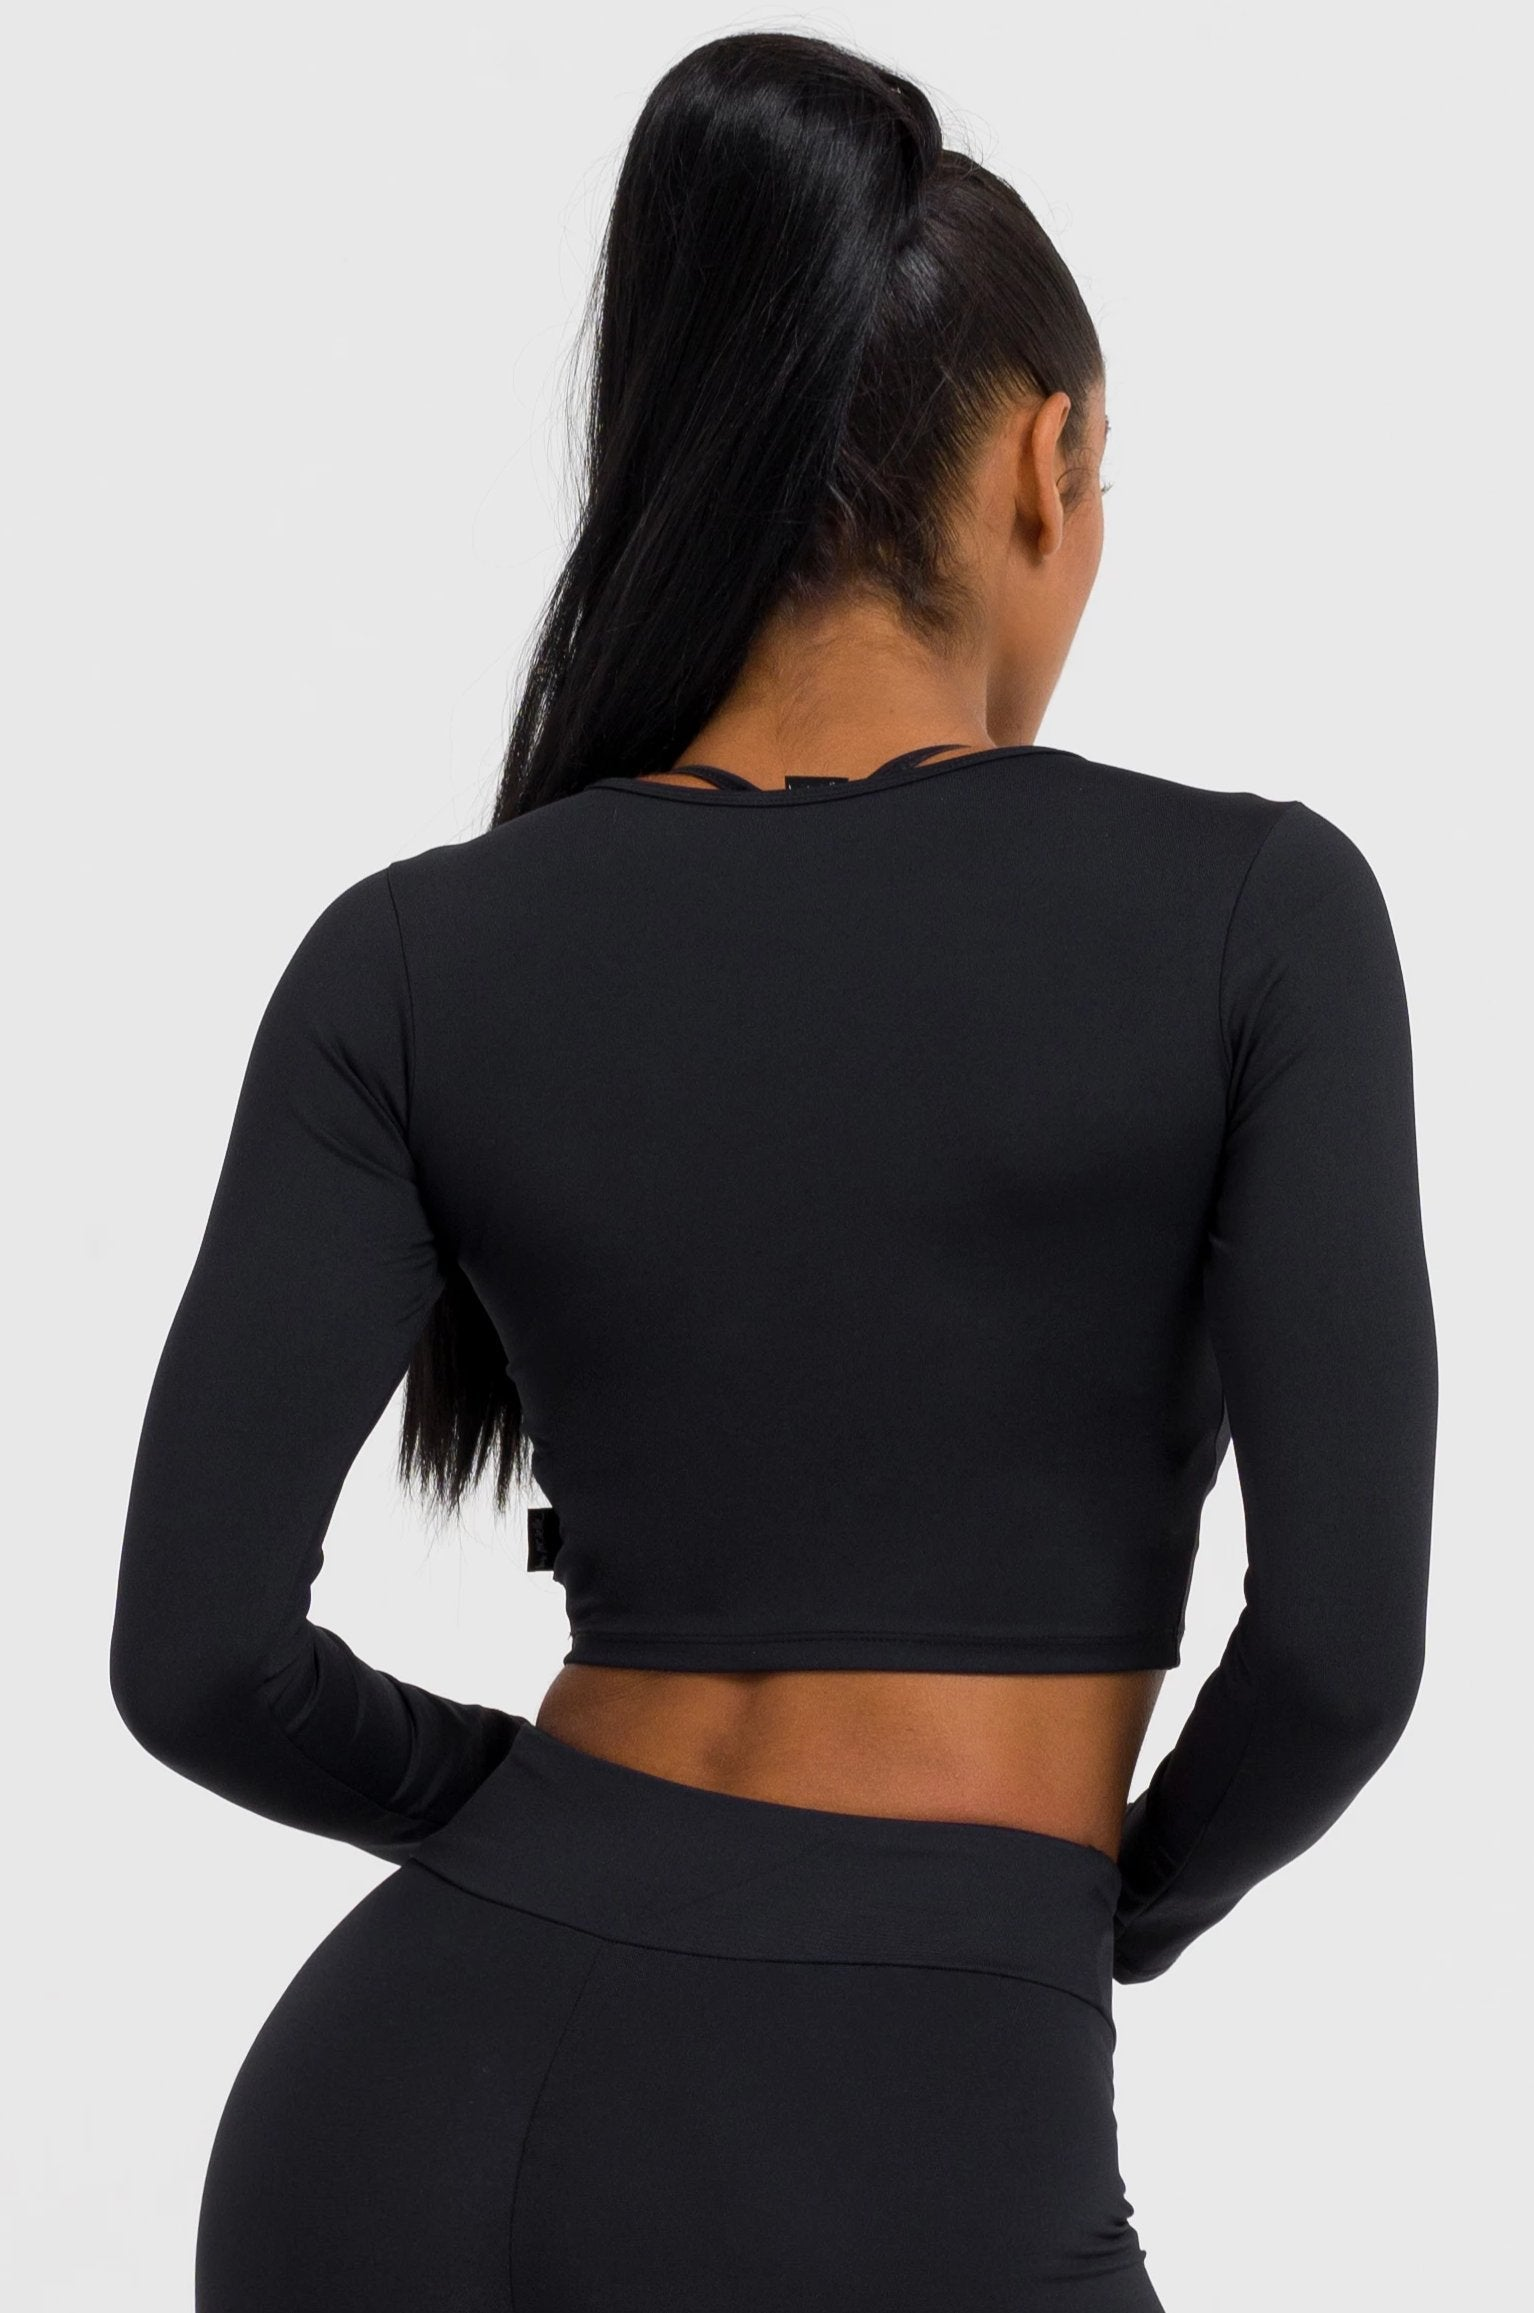 Solid Black Long Sleeve Crop